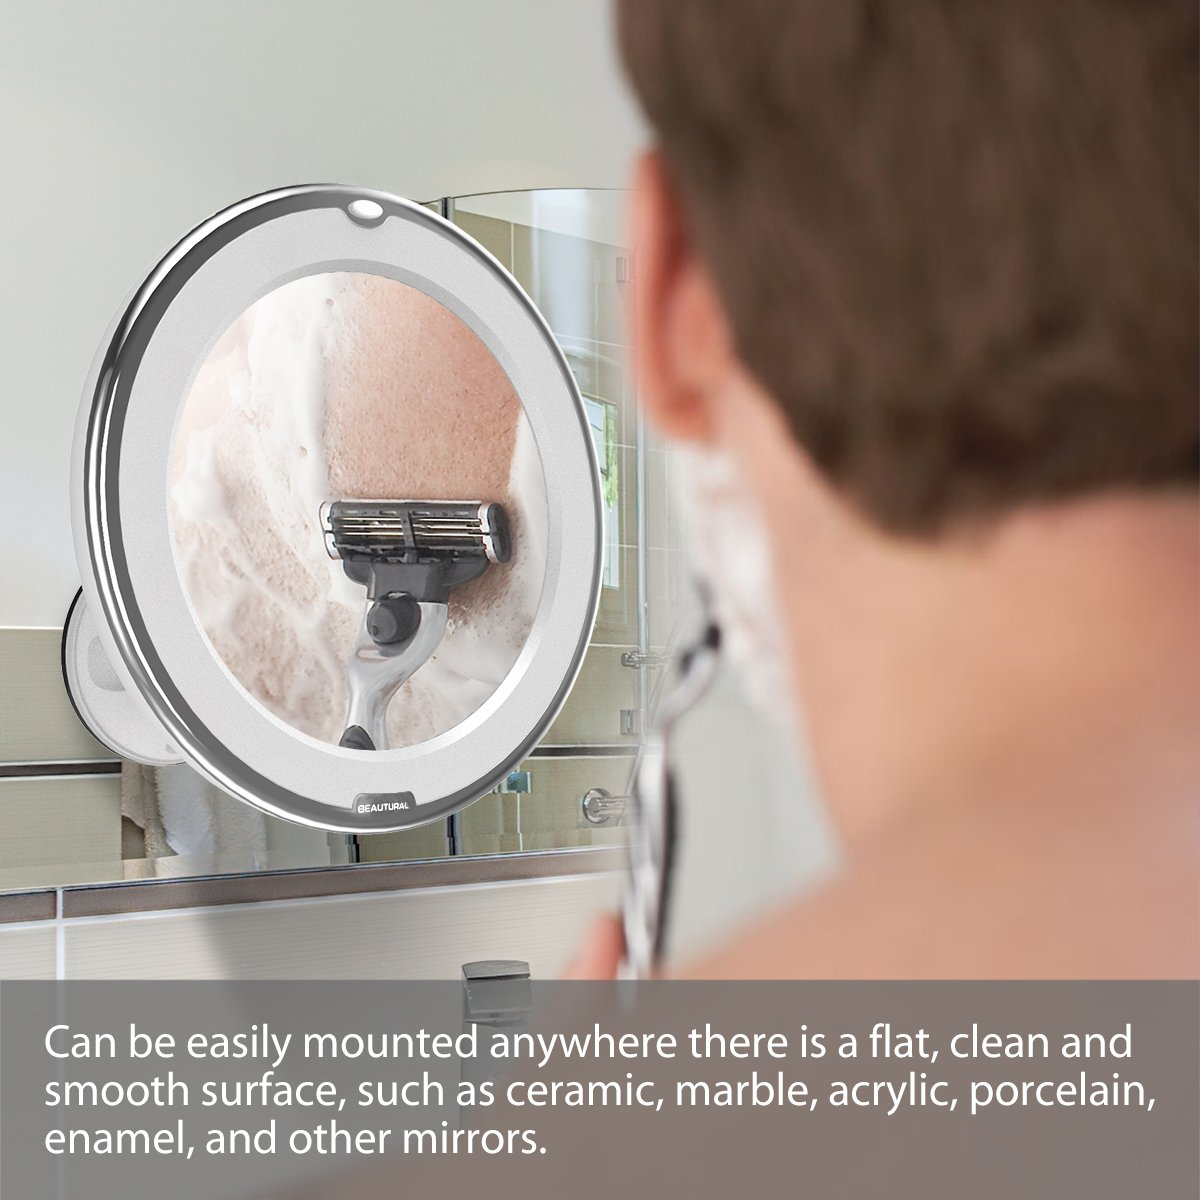 Beautural 10X Magnifying Lighted Vanity Makeup Mirror with Natural White LED, 360 Degree Swivel Rotation and Locking Suction by Beautural (Image #6)